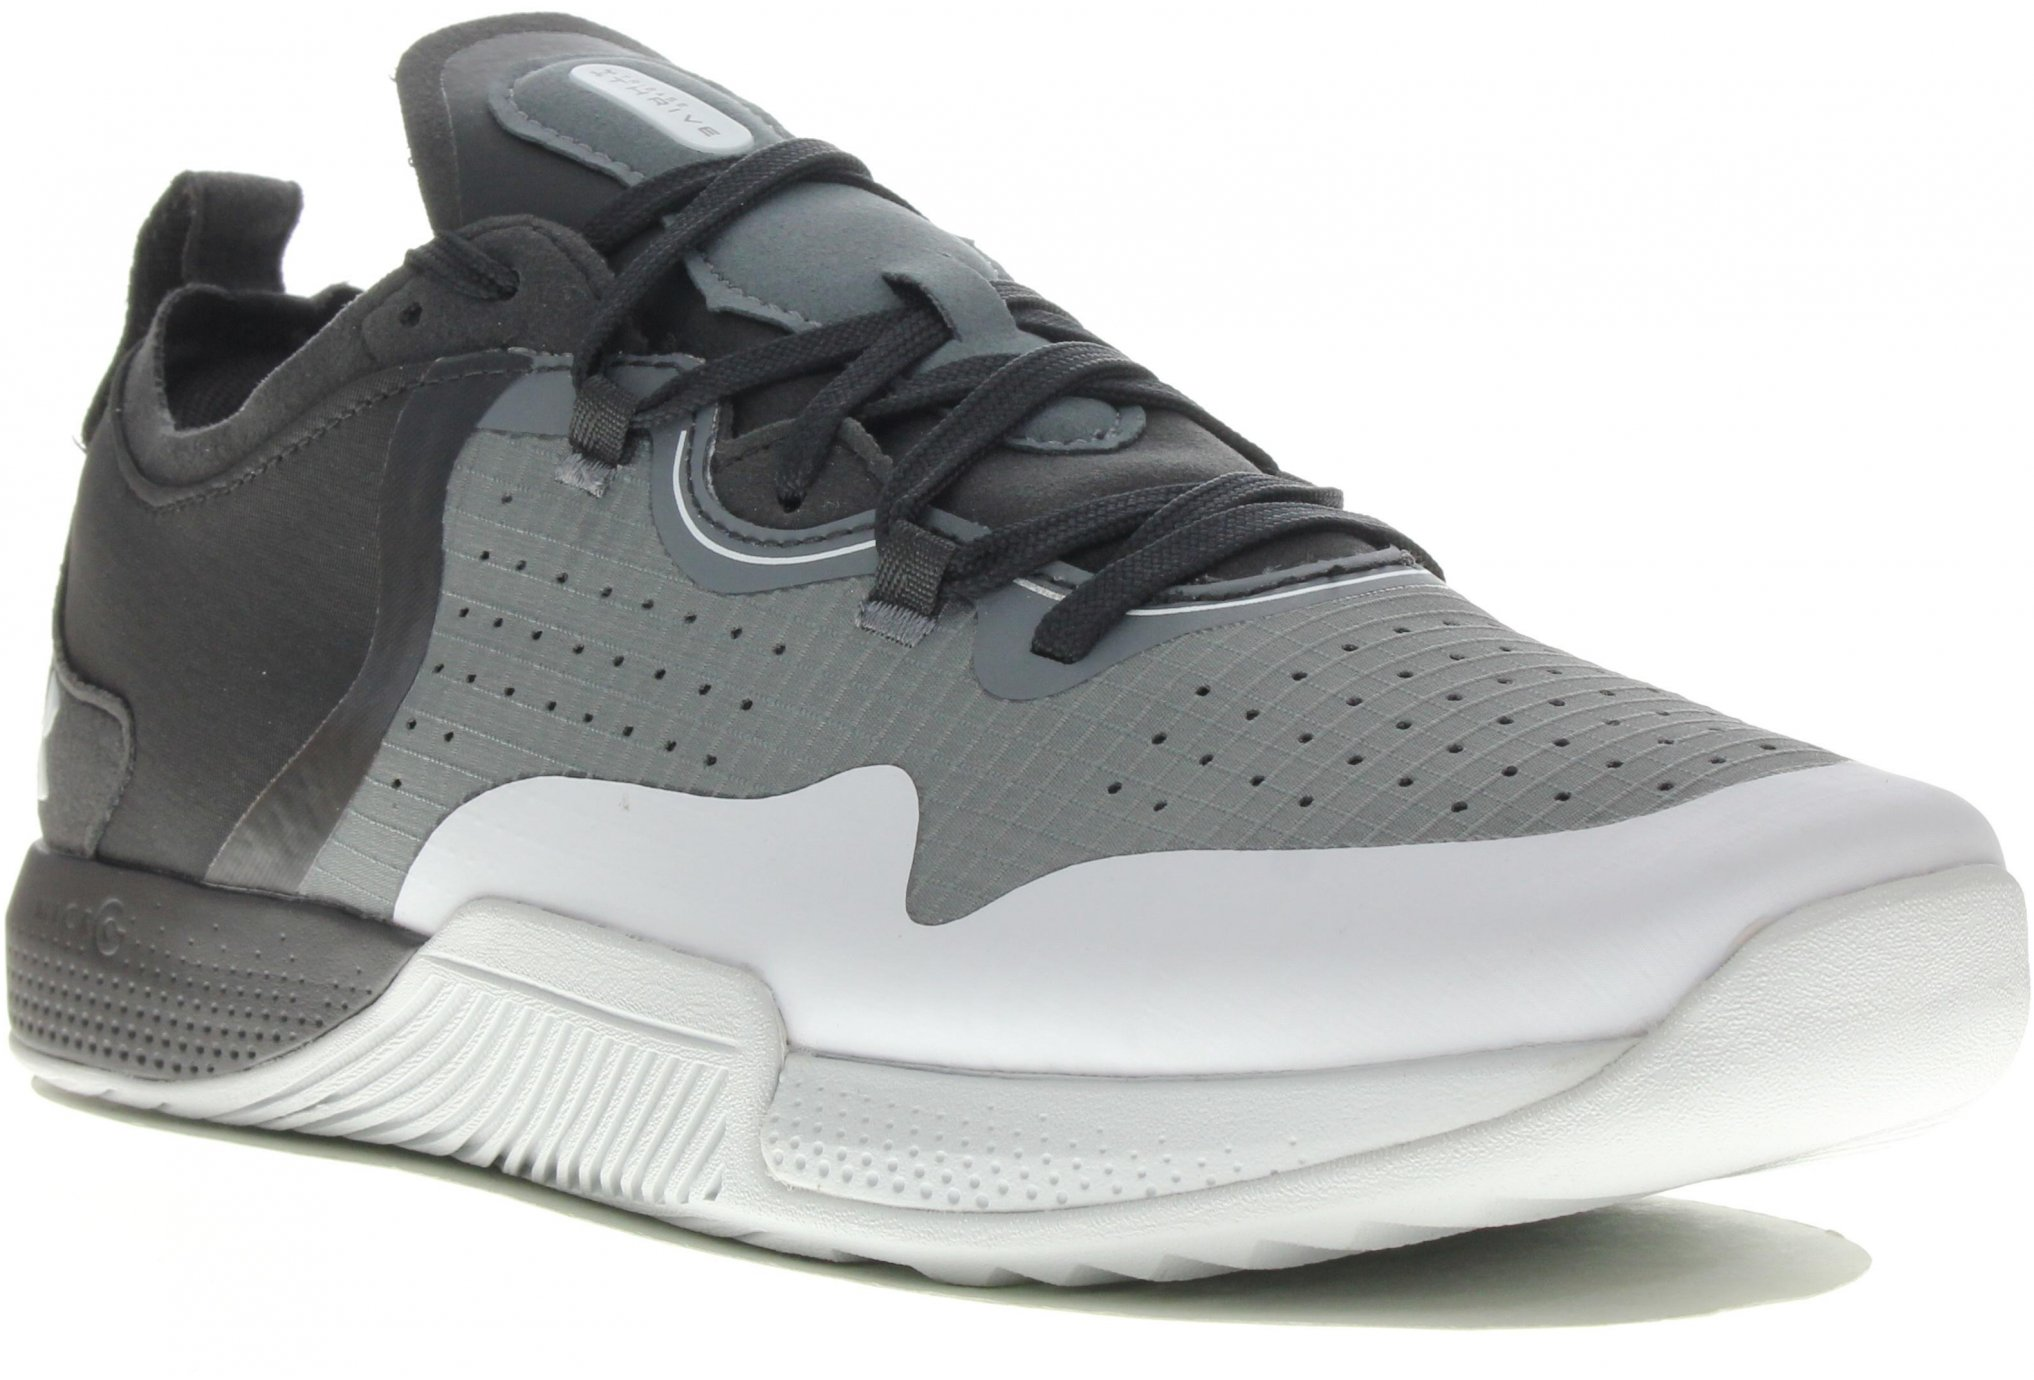 Under Armour TriBase Thrive 2